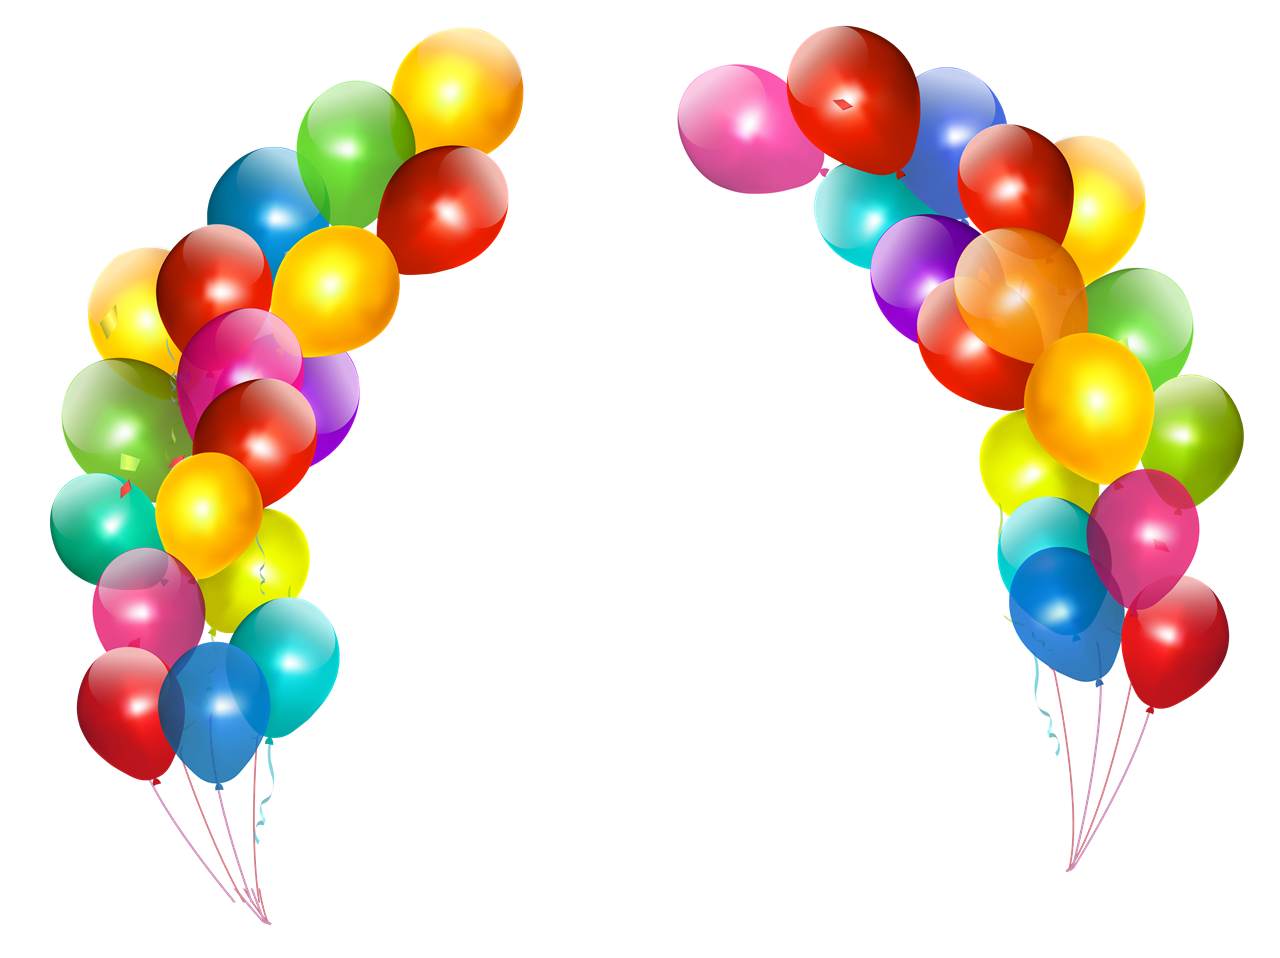 Balloons .png. Colorful png image background